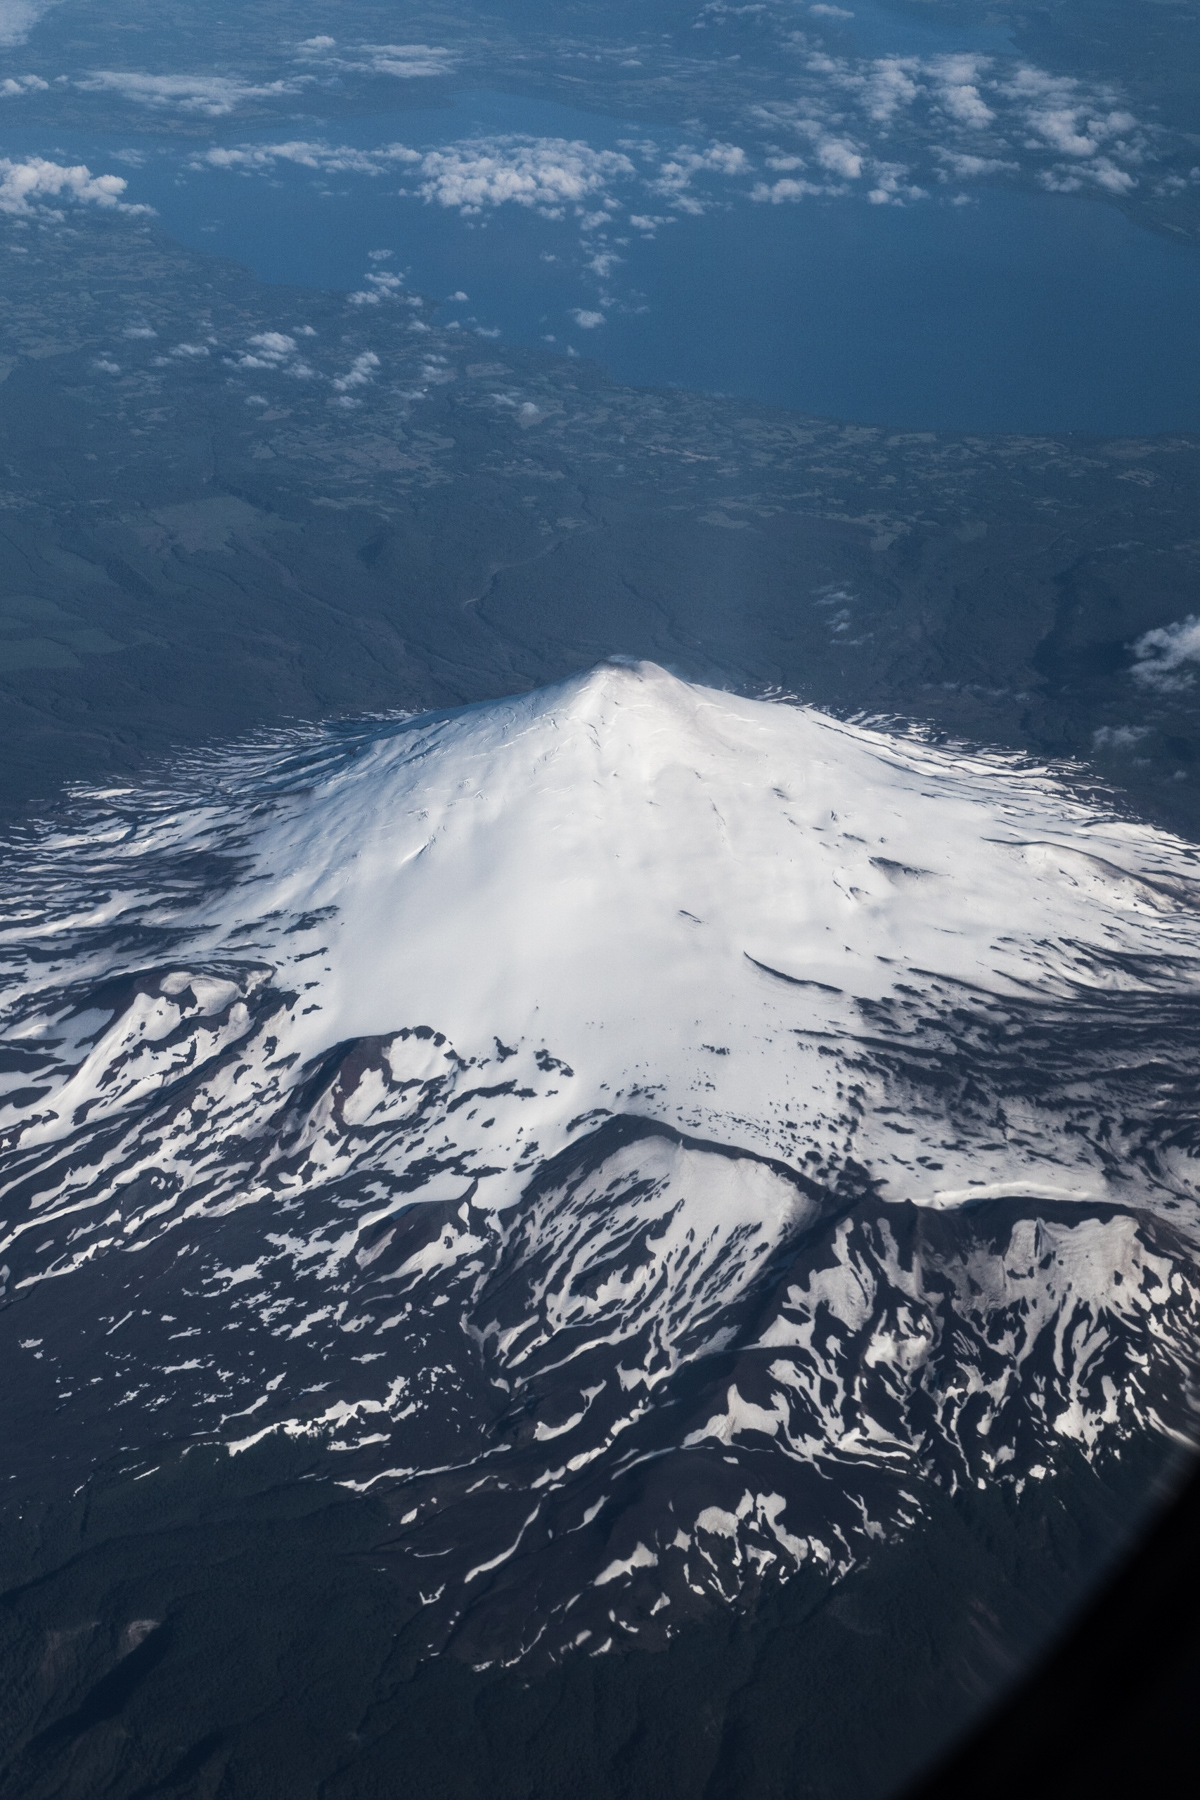 Image from aeroplane of Volcano on way to Ushuaia, Argentina from Santiago, Chile